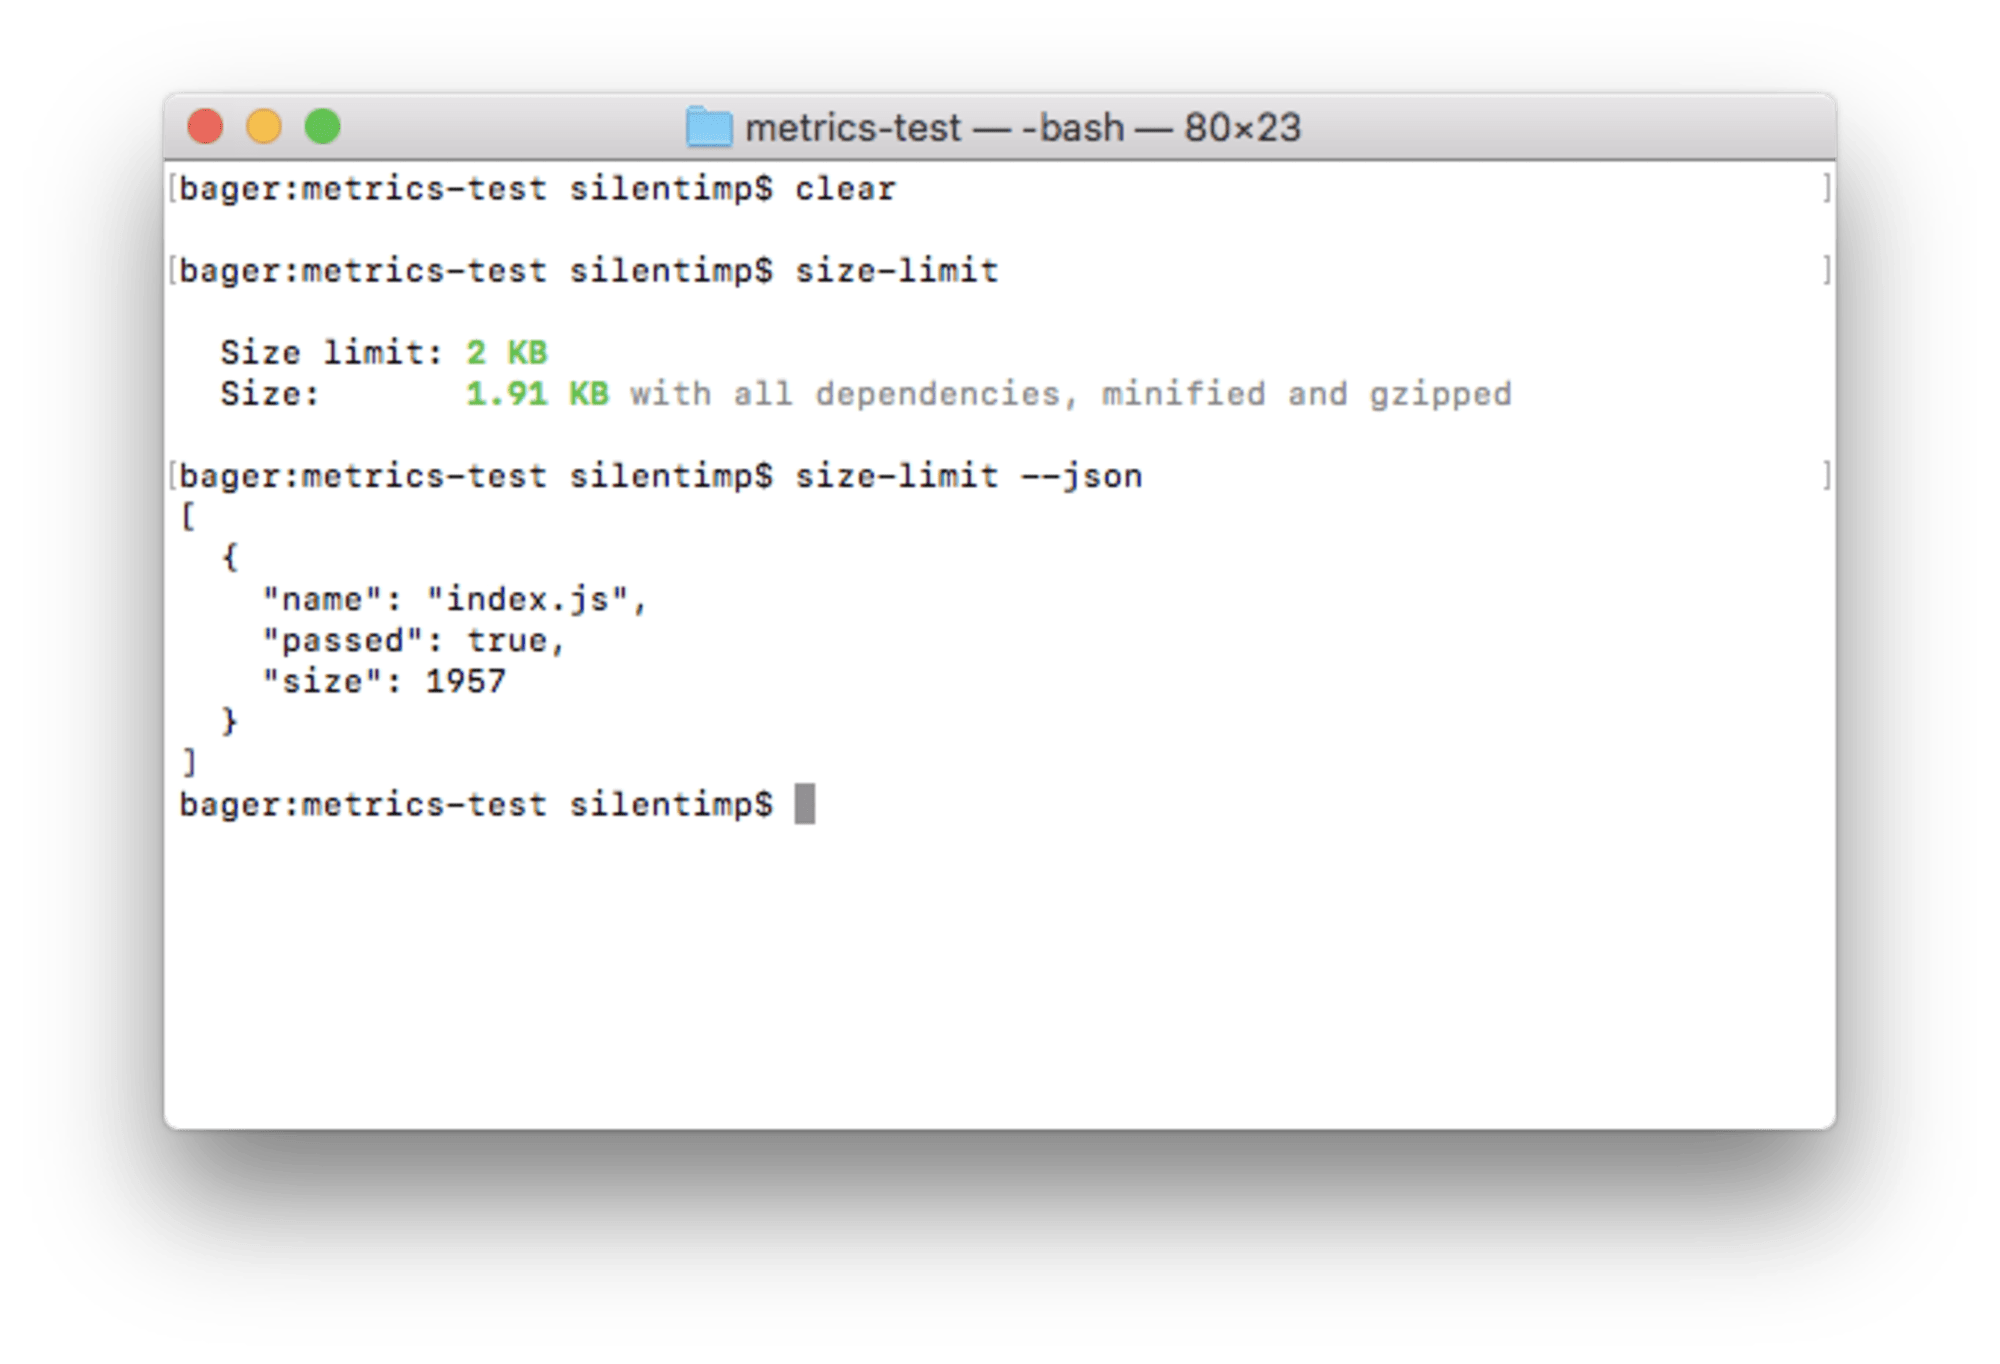 The command size-limit --json output JSON to console. JSON contains an array of objects which contain a file name and size, as well as lets us know if it exceeds the size limit